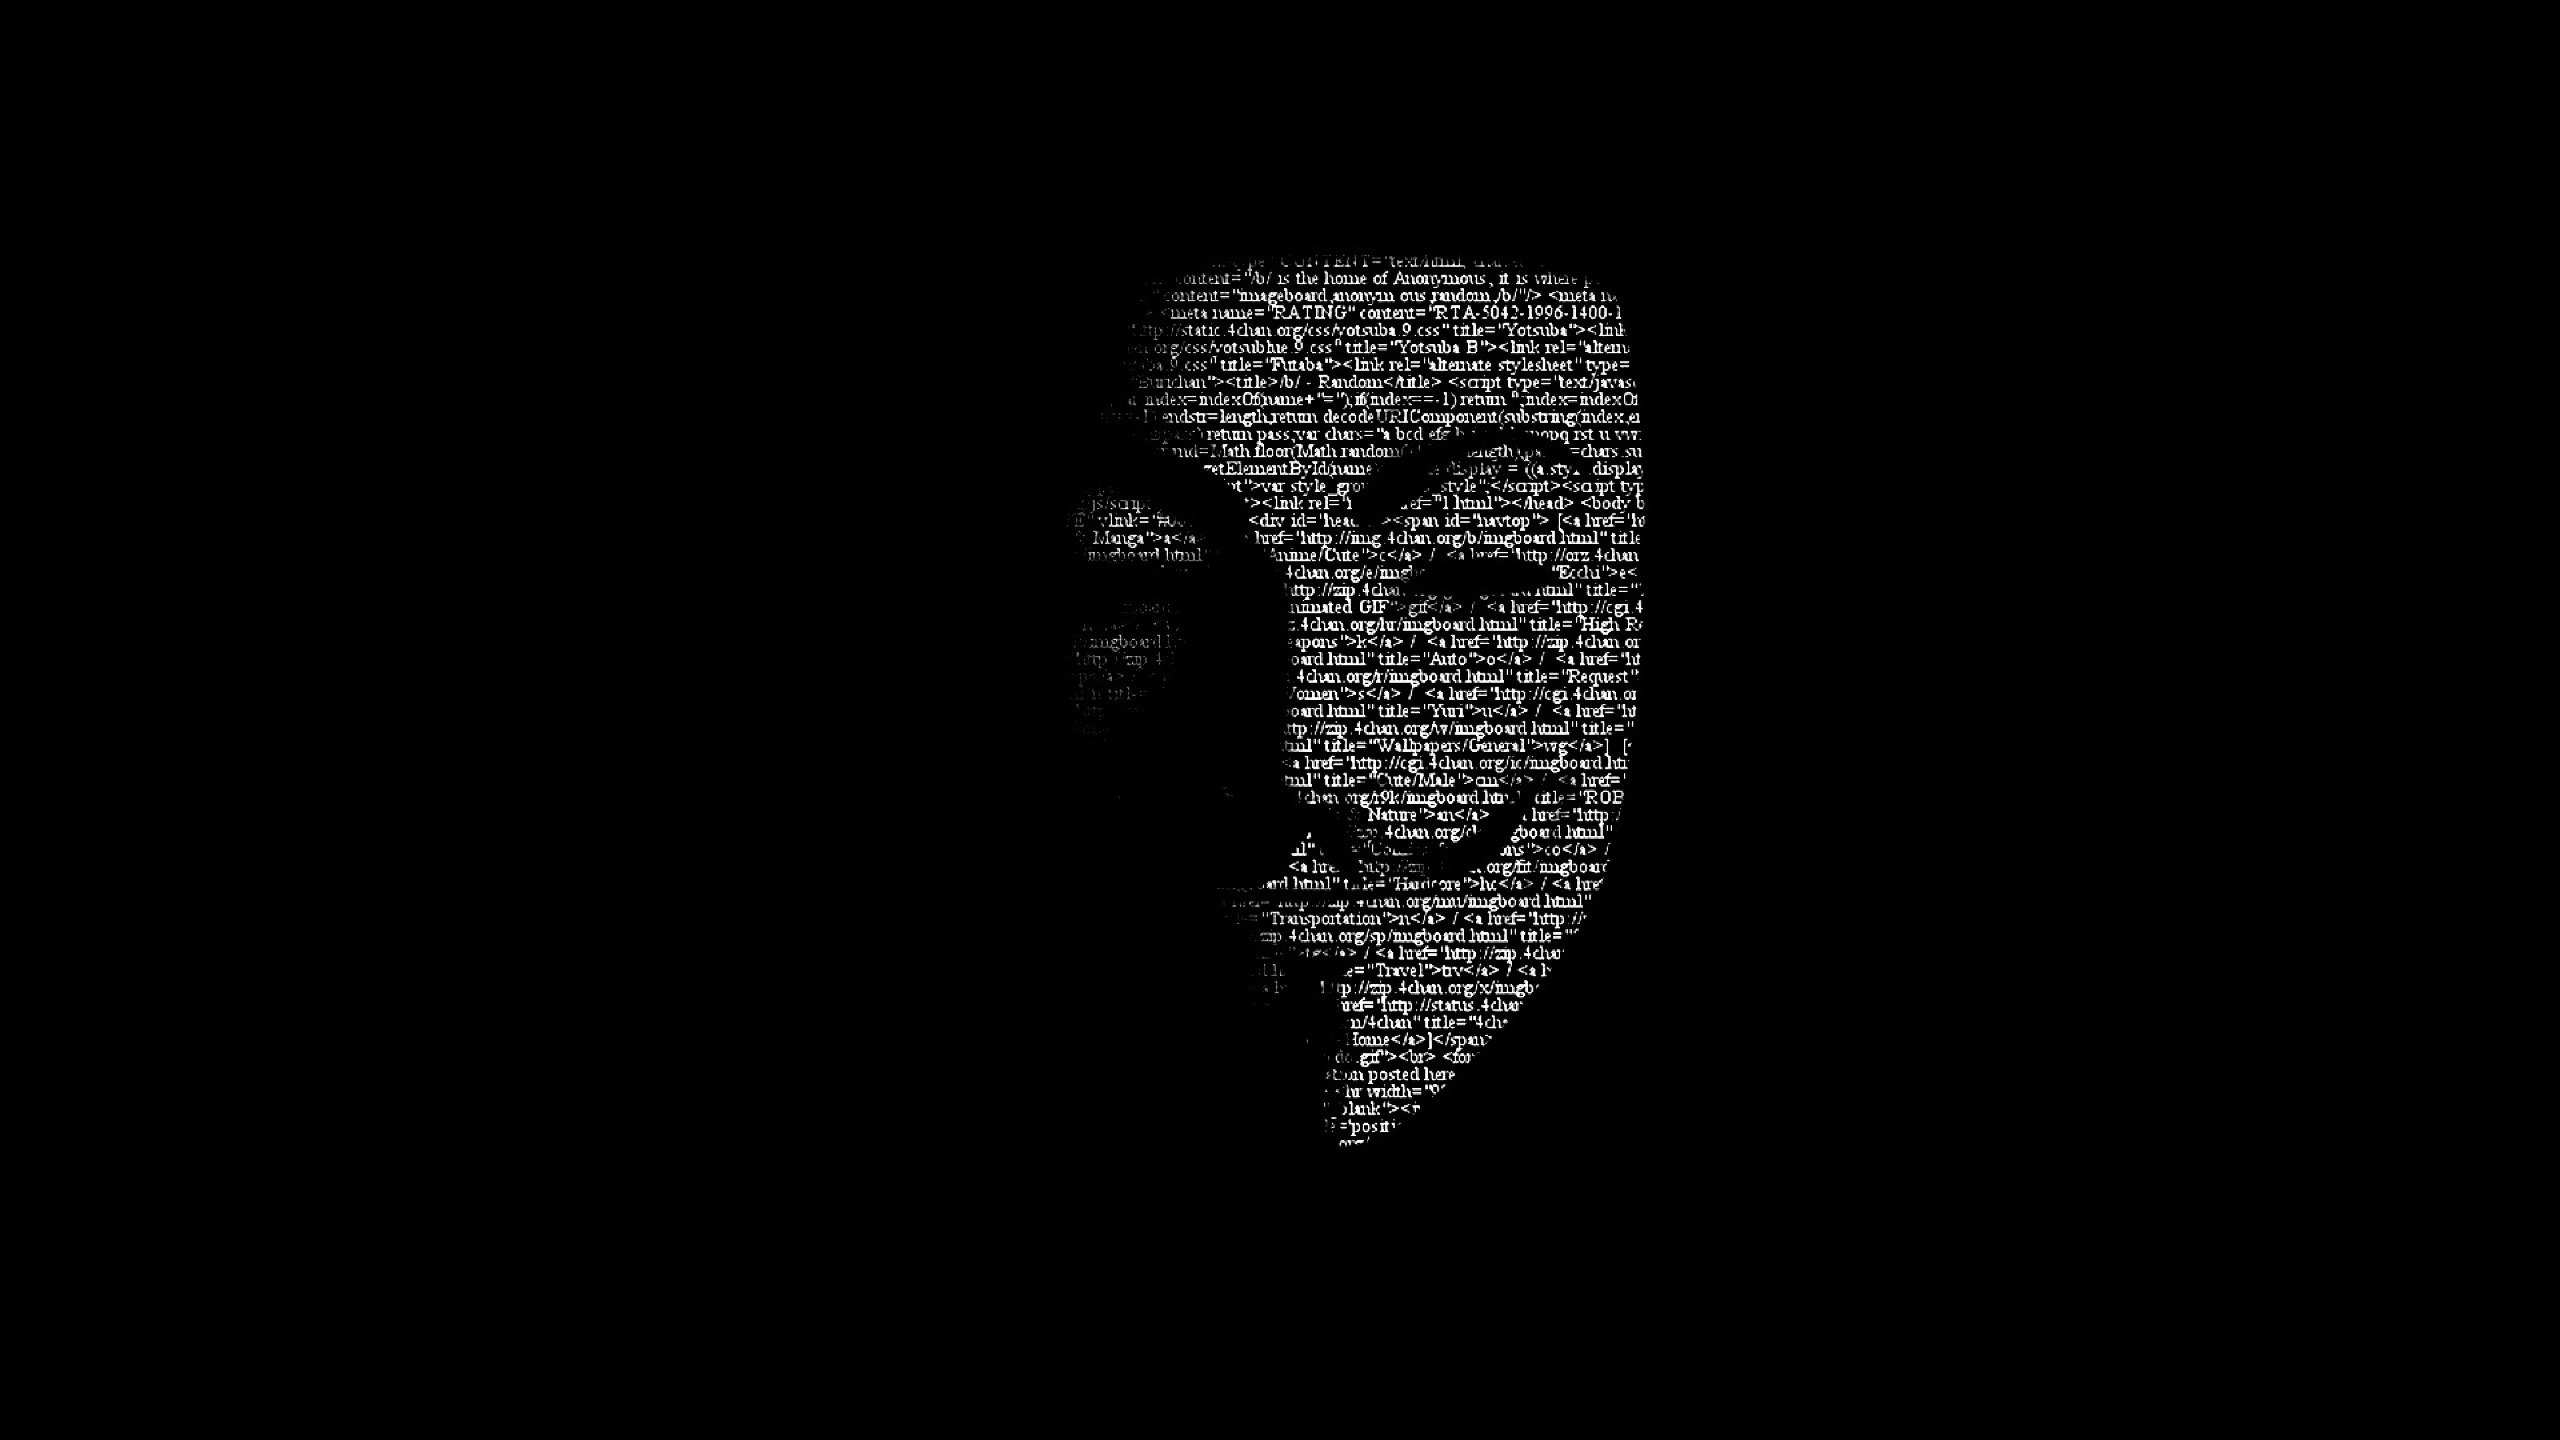 Download Anonymous Mask 1024x600 Resolution Full HD Wallpaper